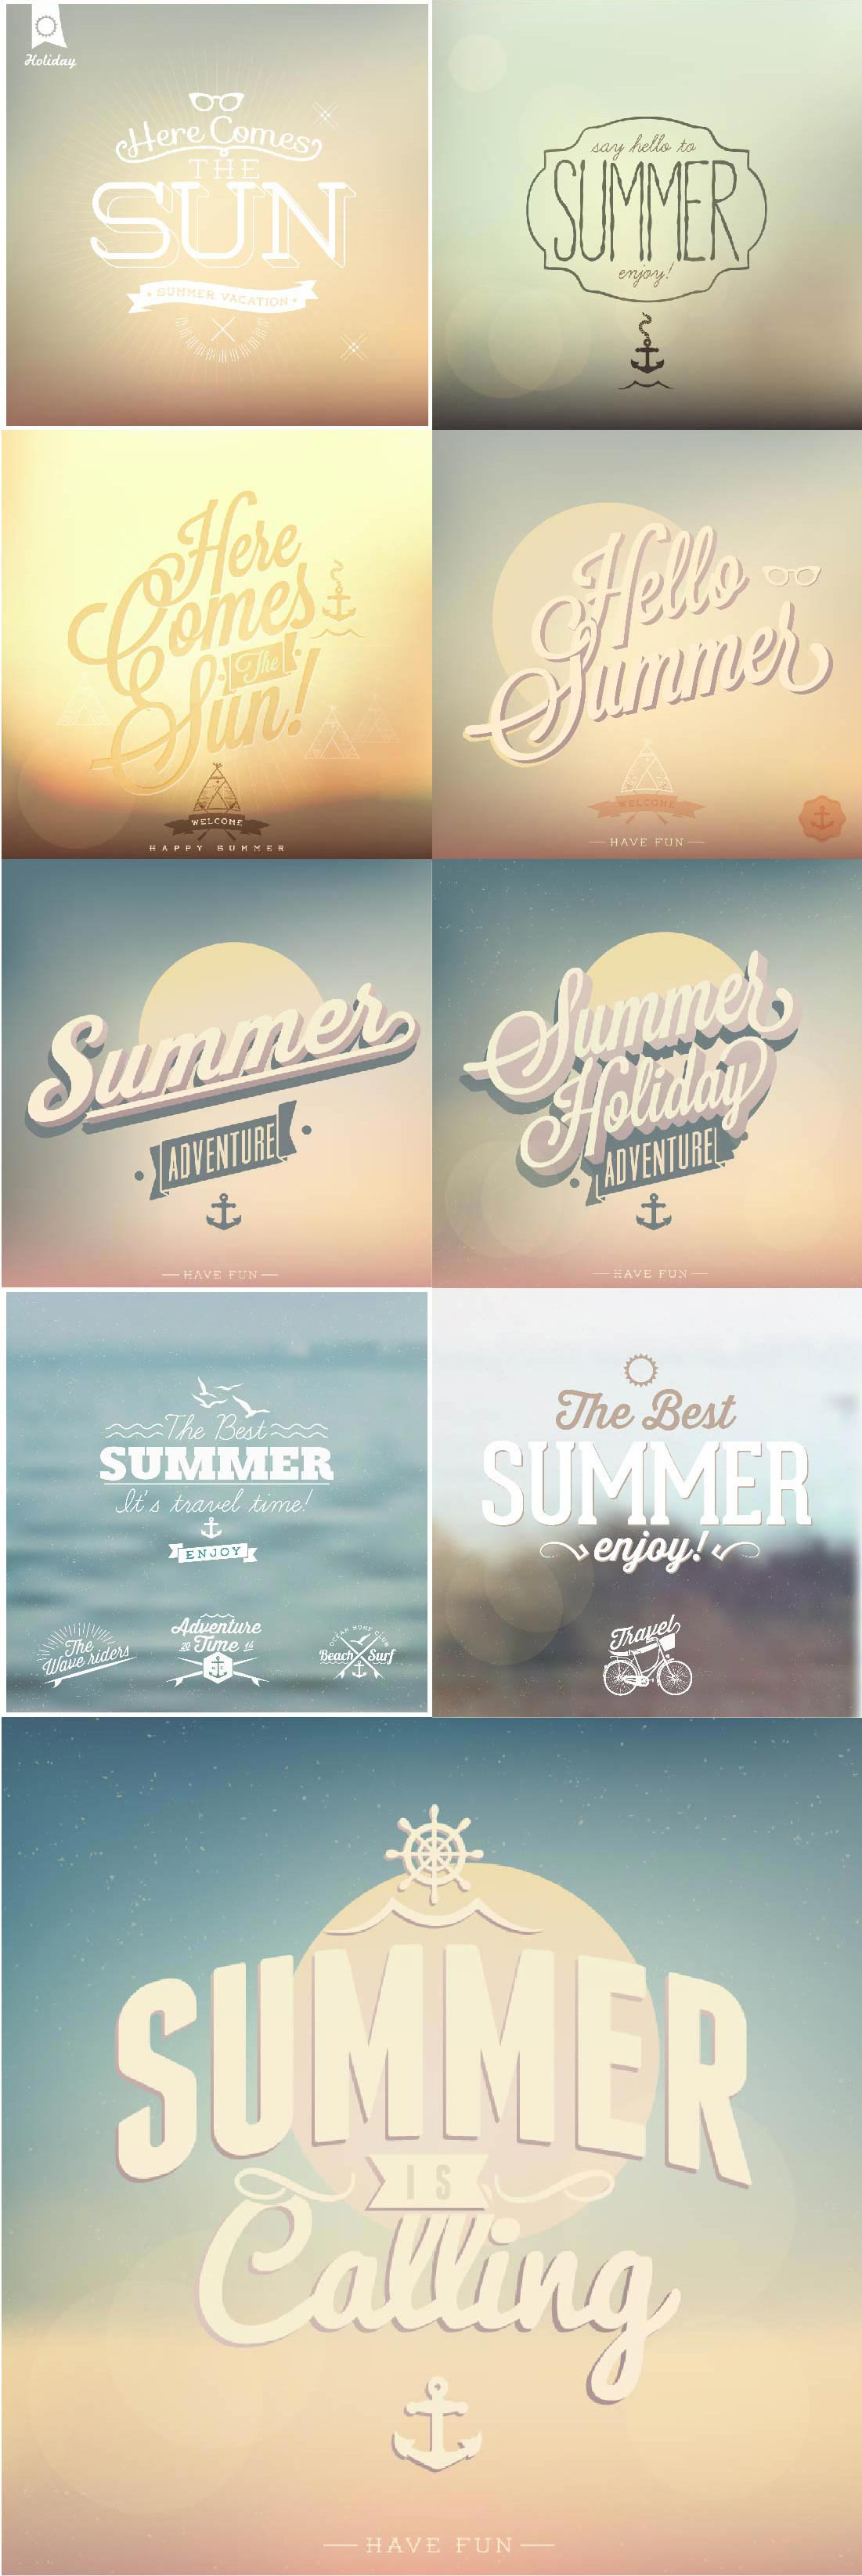 500+ Premium Vectors Collection 3